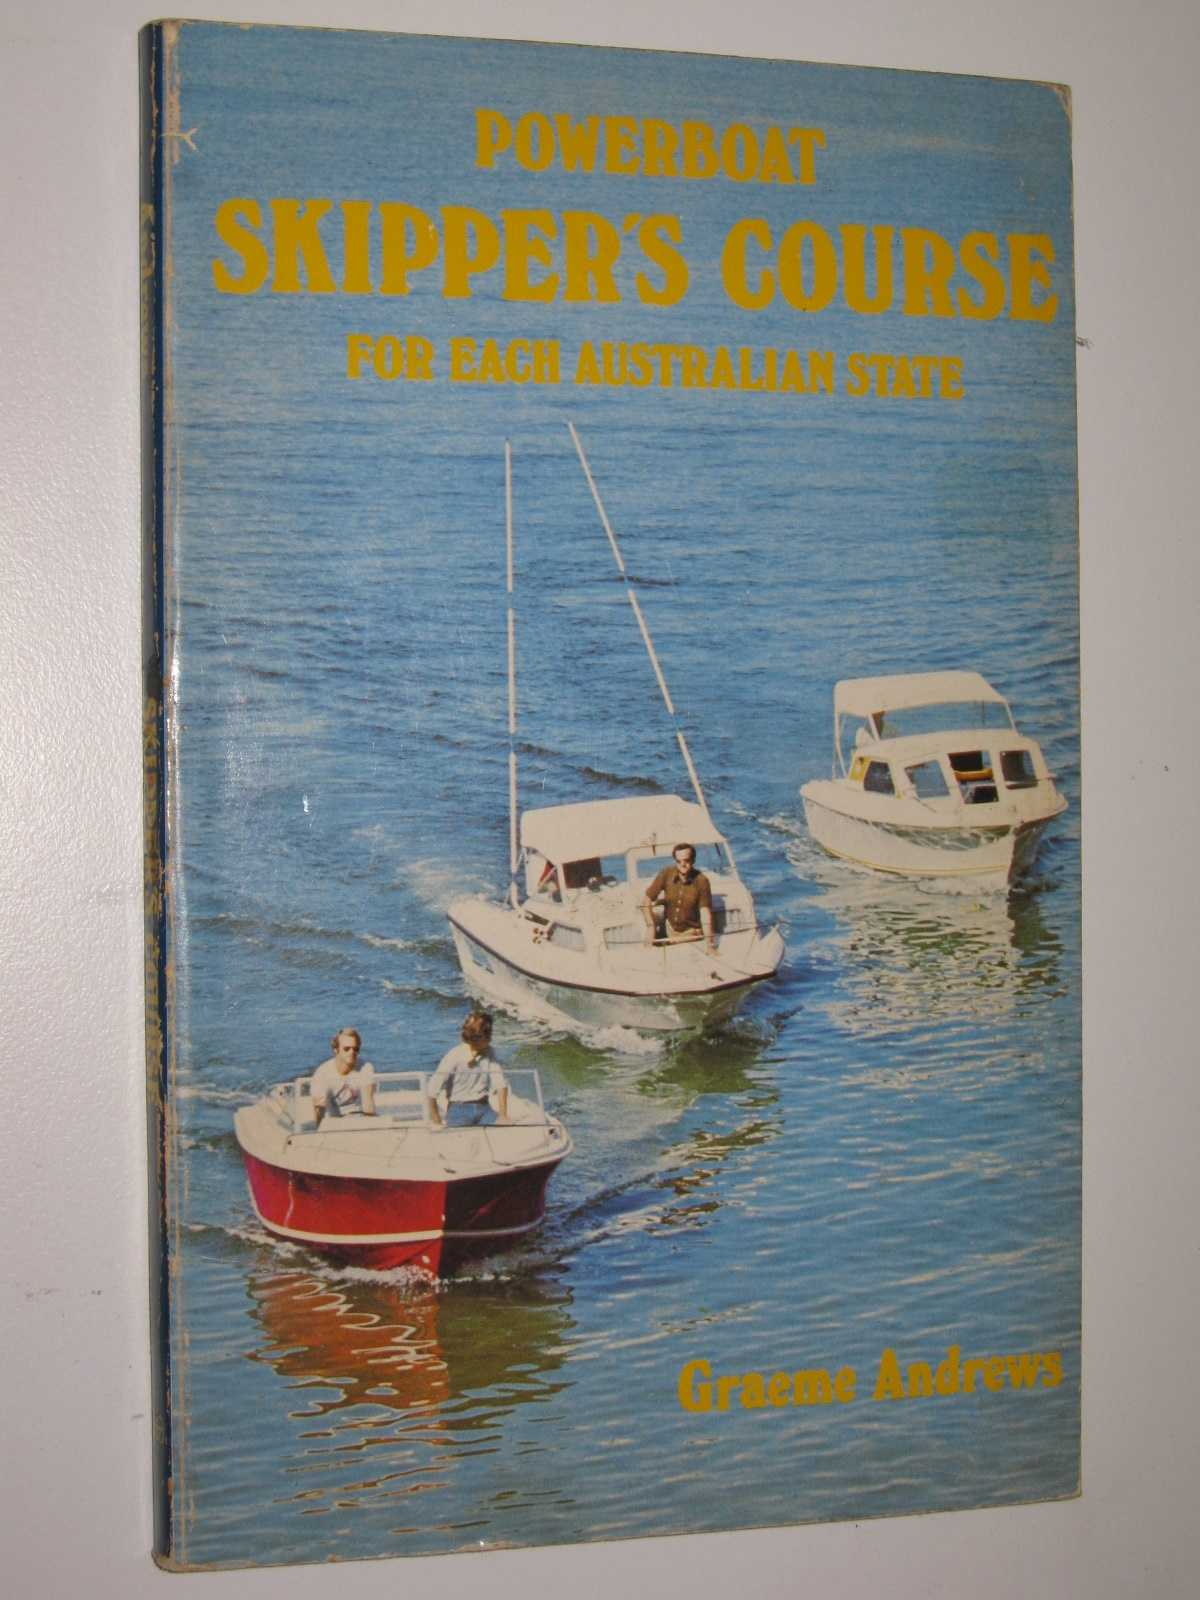 Powerboat Skipper's Course for Each Australian State, Andrews, Graeme